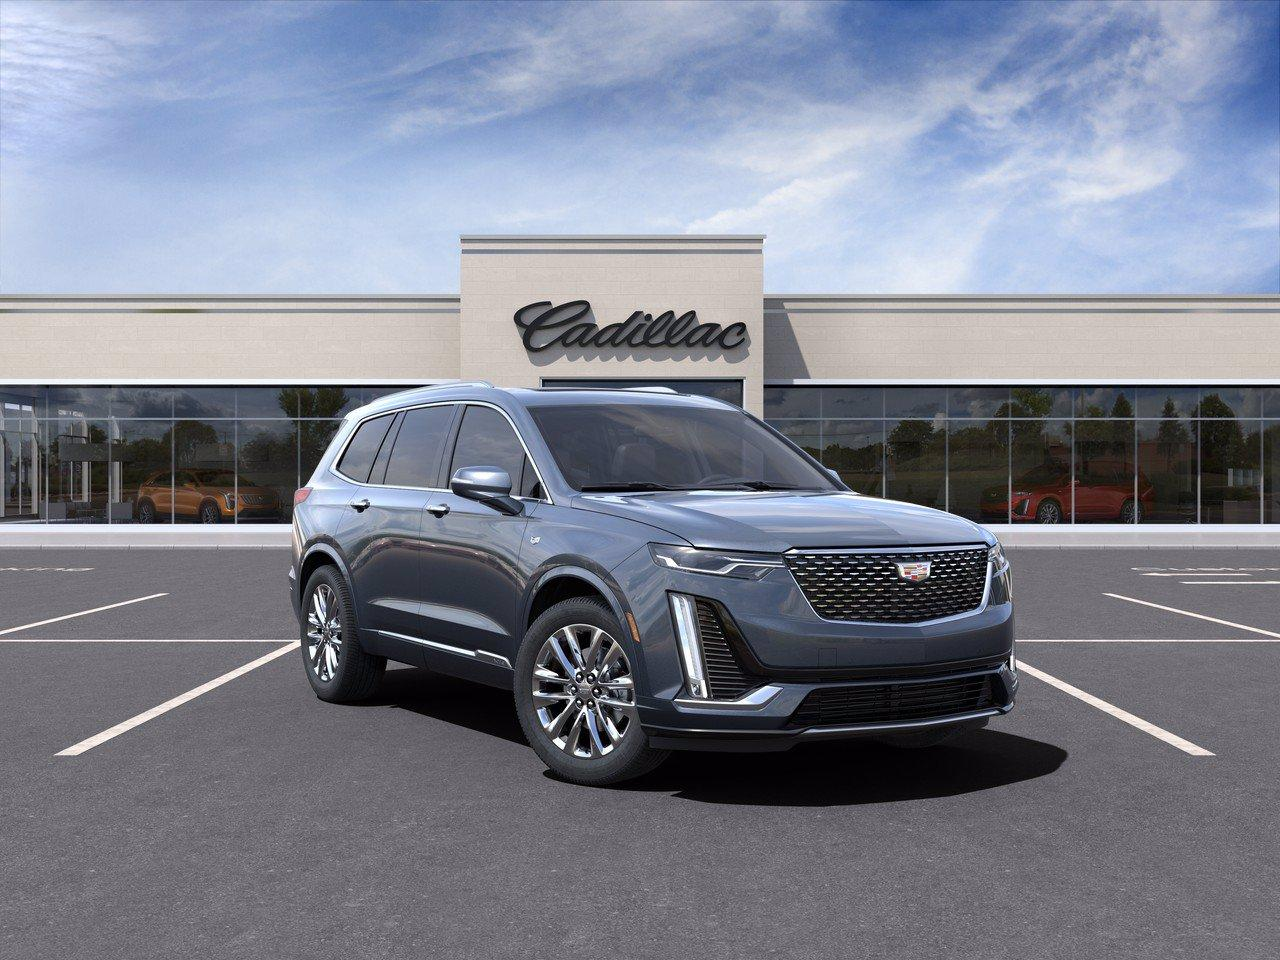 2021 Cadillac XT6 Vehicle Photo in Trevose, PA 19053-4984